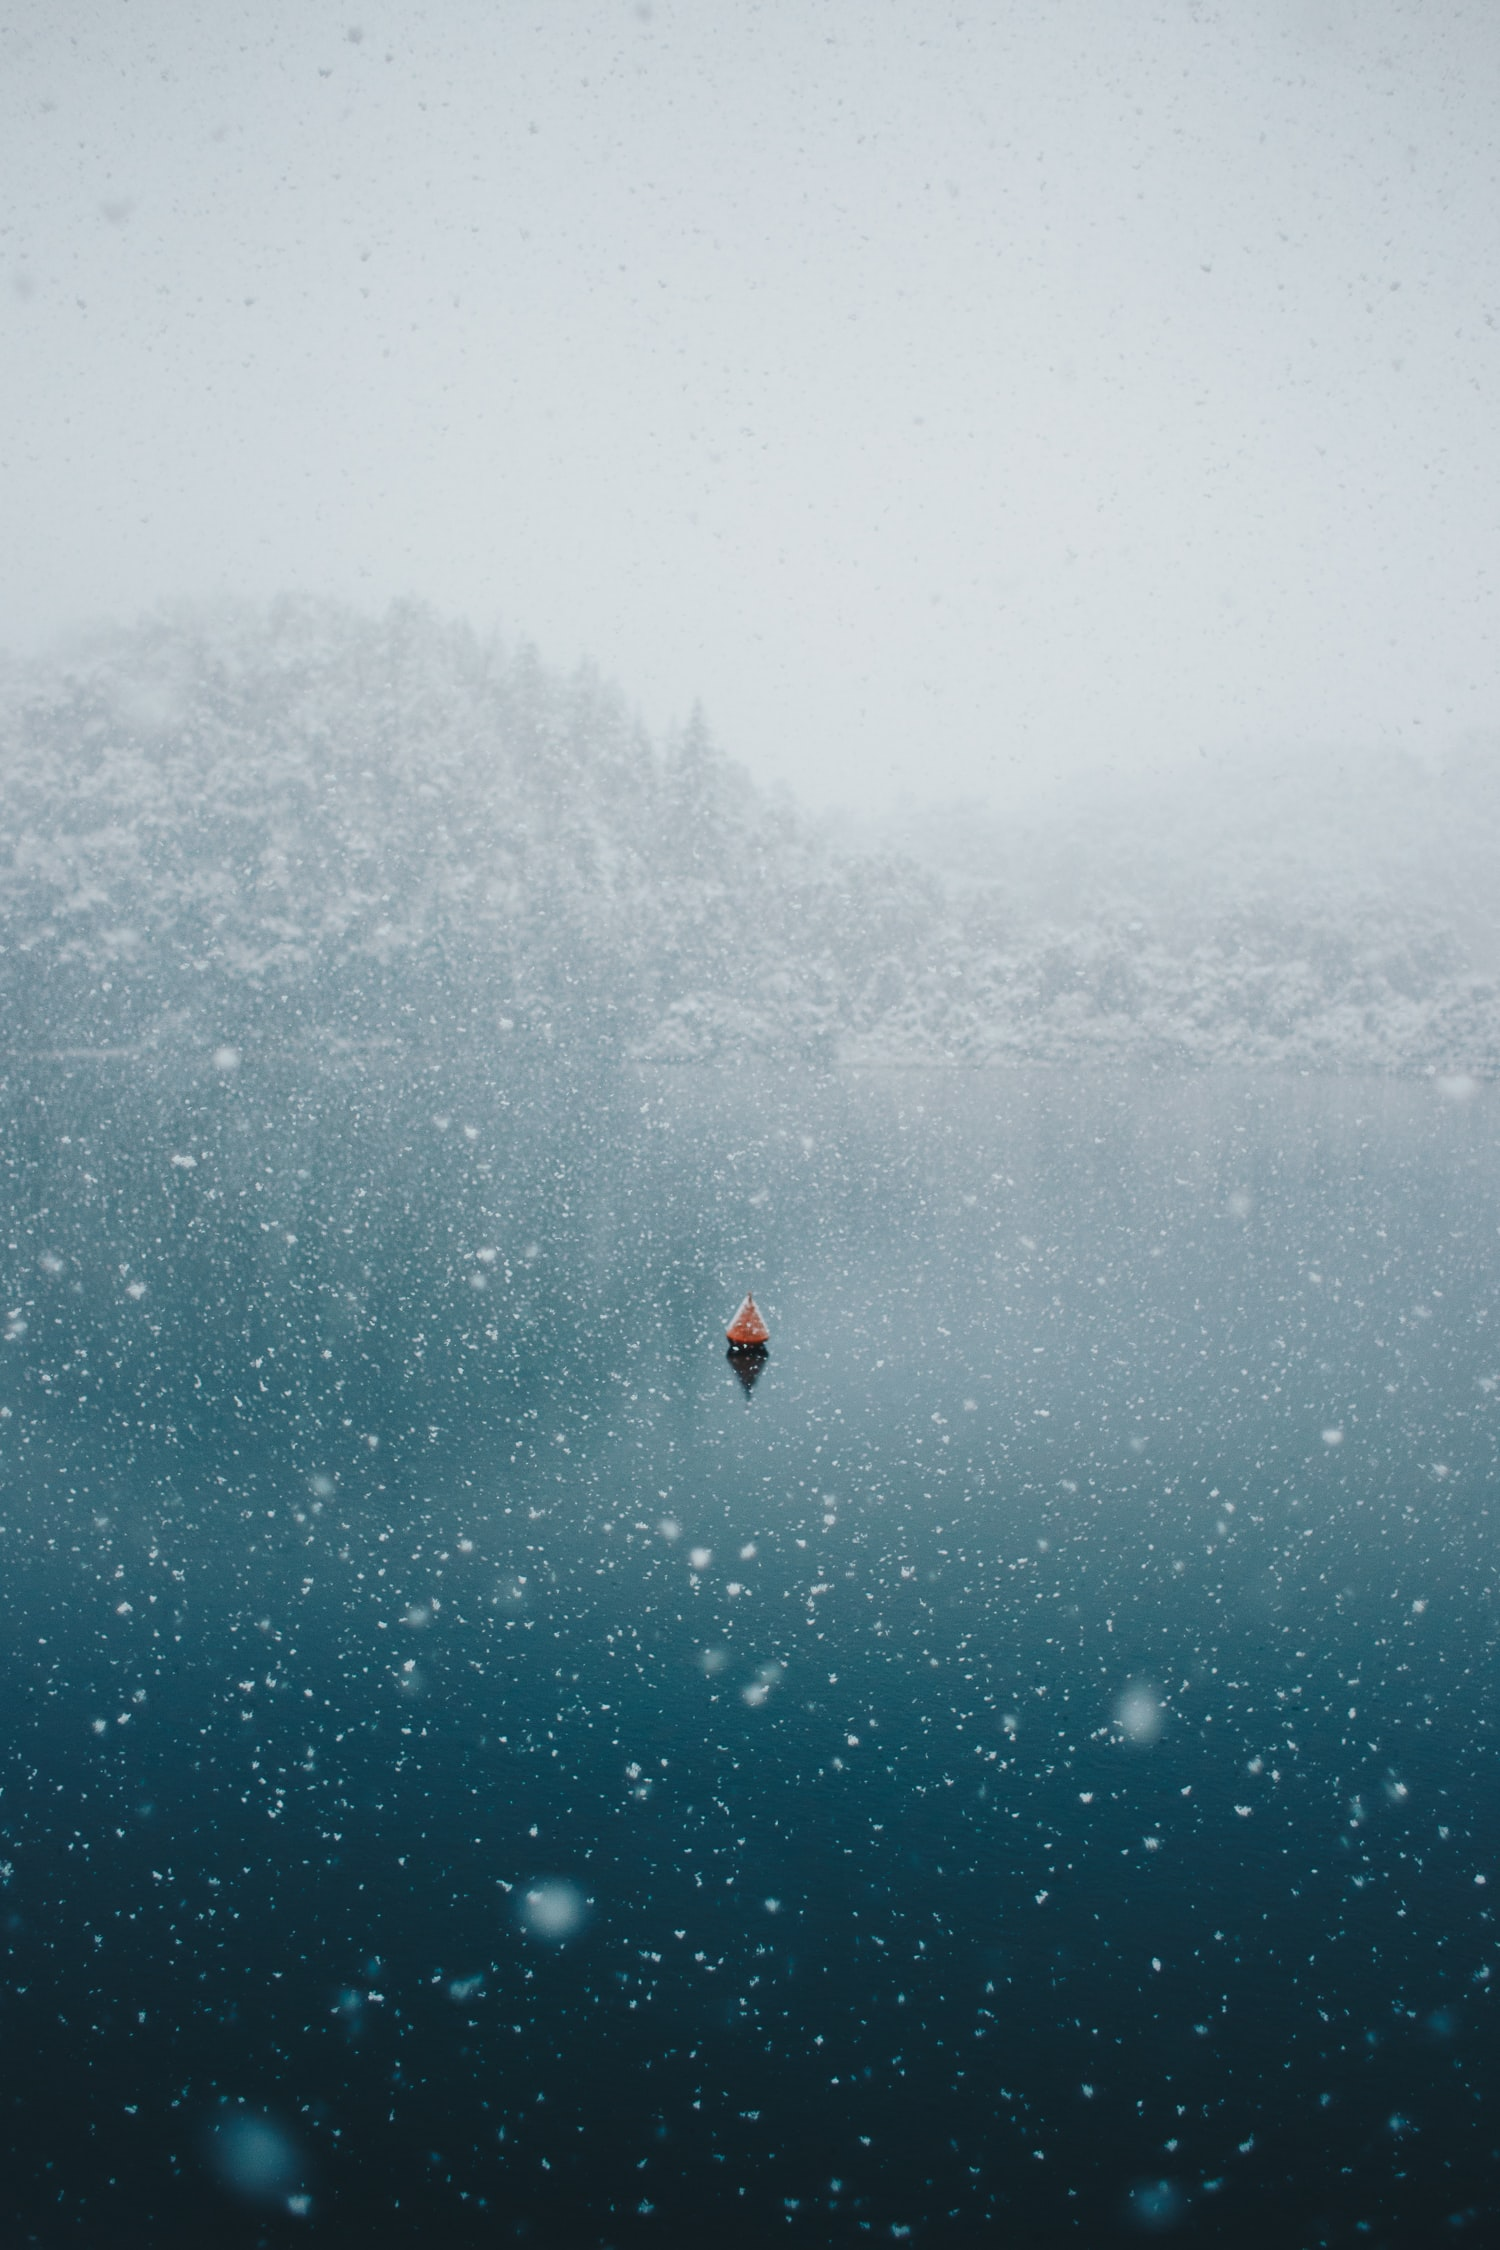 Snowing over an ocean with a lone boat.